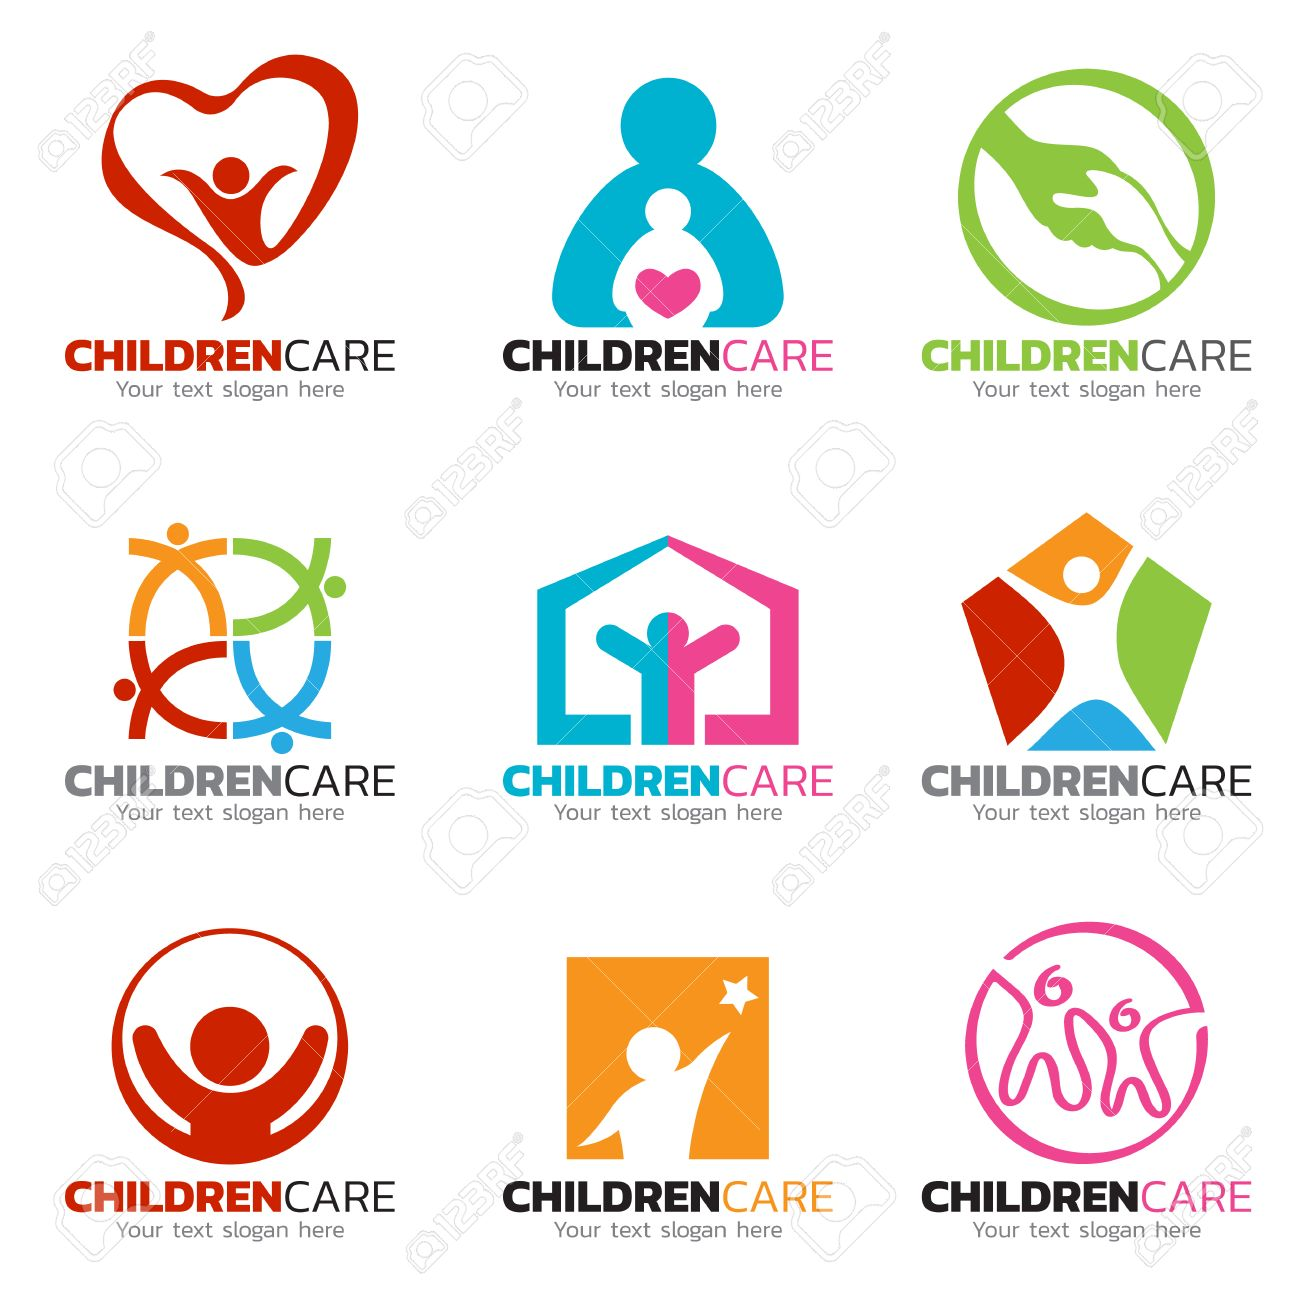 Home Health Care Logo Images Stock Pictures Royalty Free Home